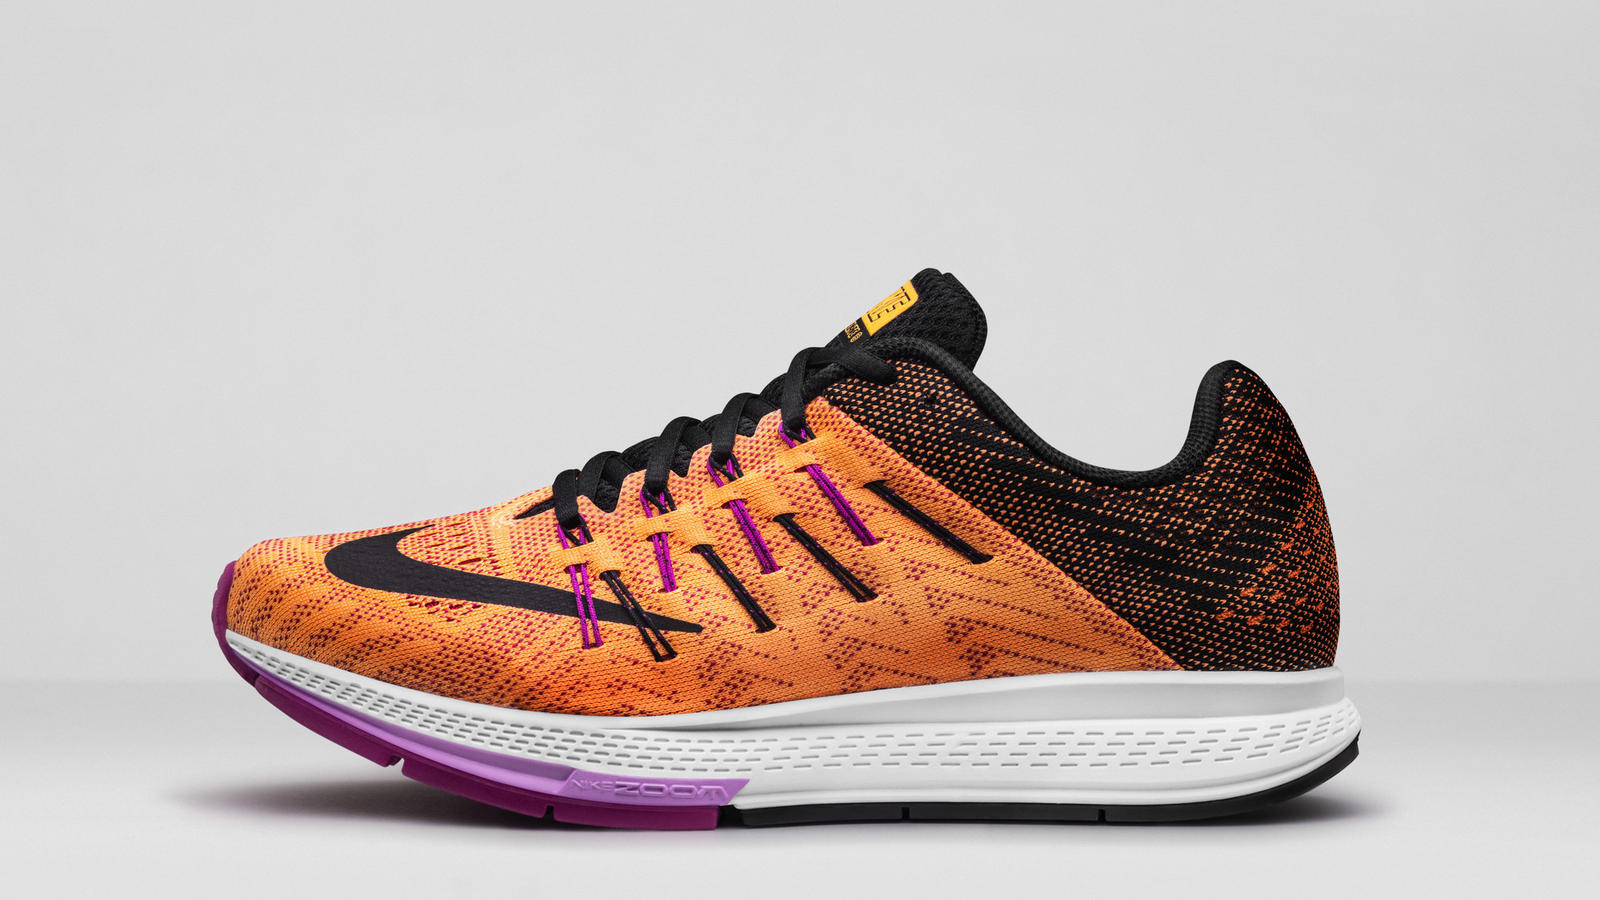 Women's Nike Air Zoom Elite 8